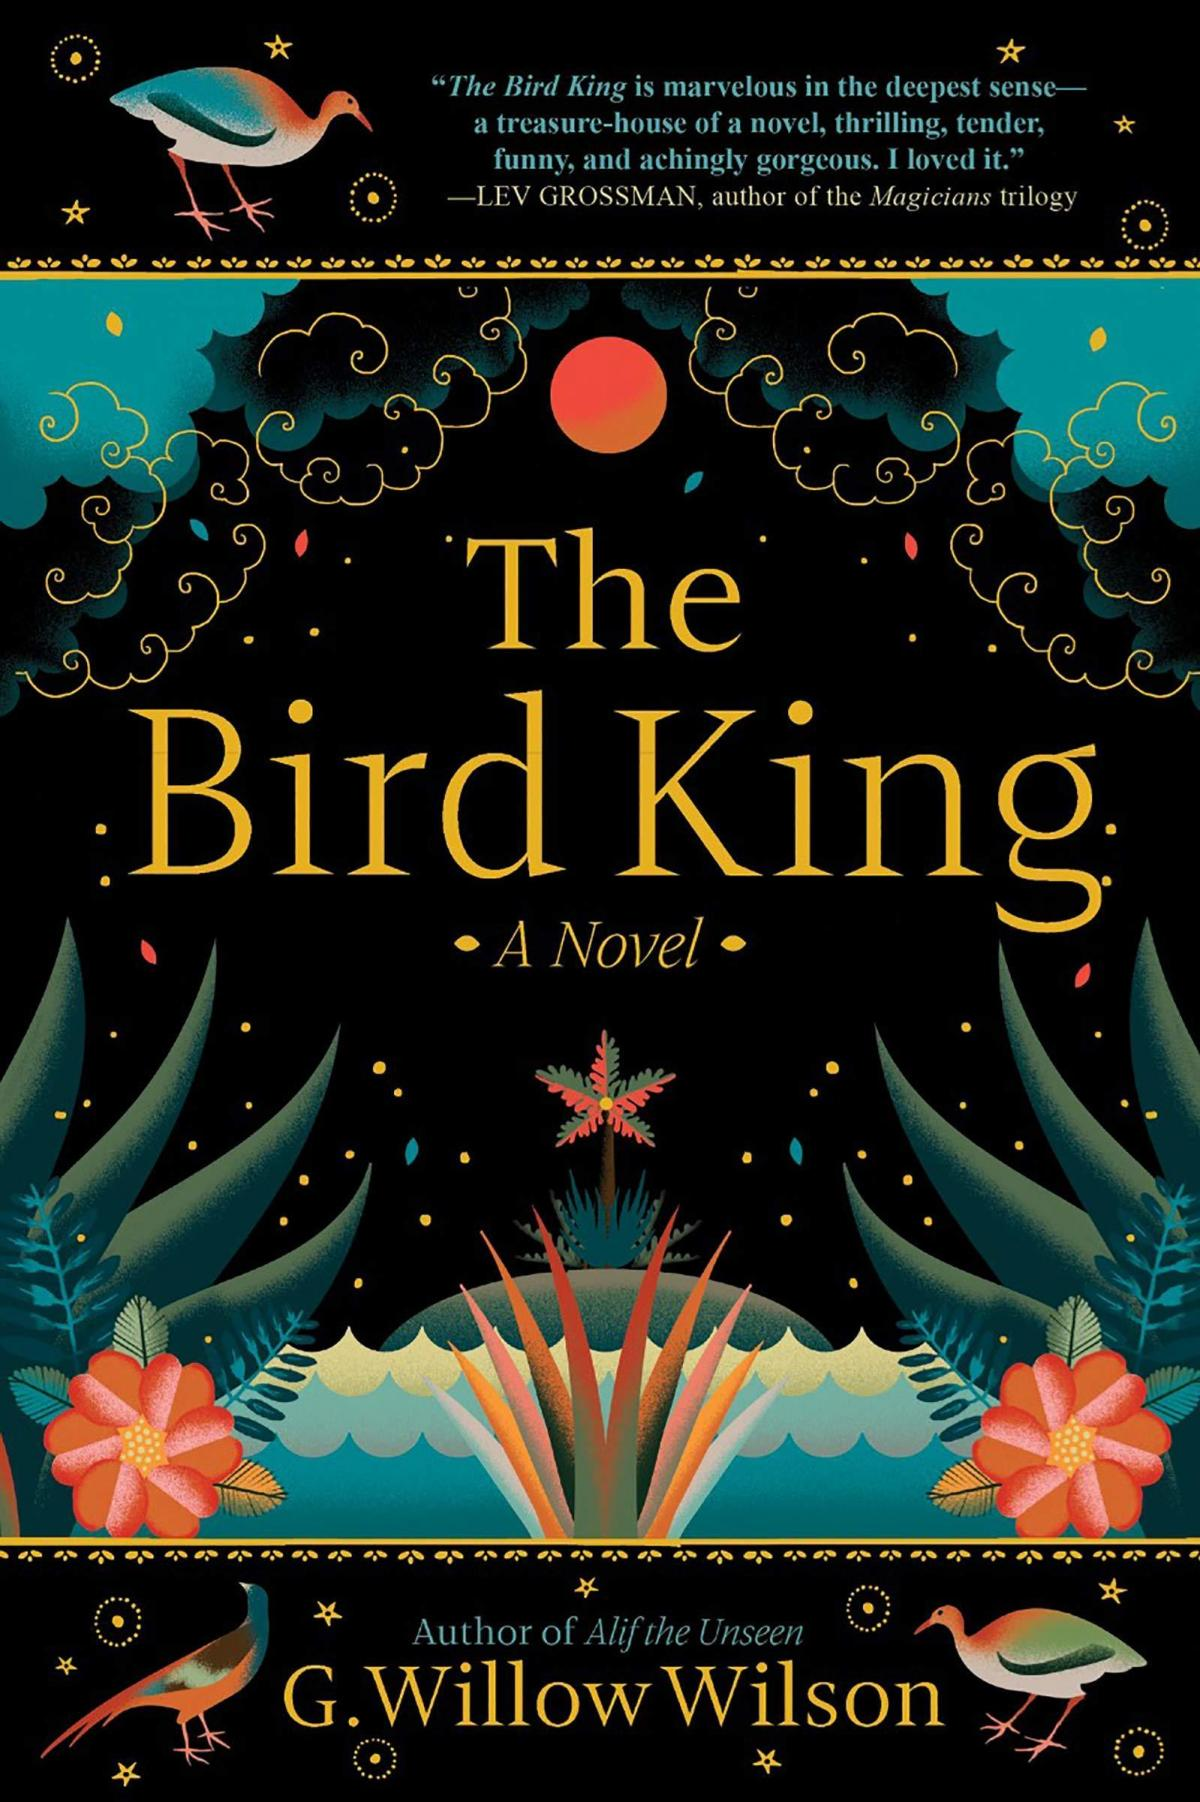 The Bird King, by G. Willow Wilson